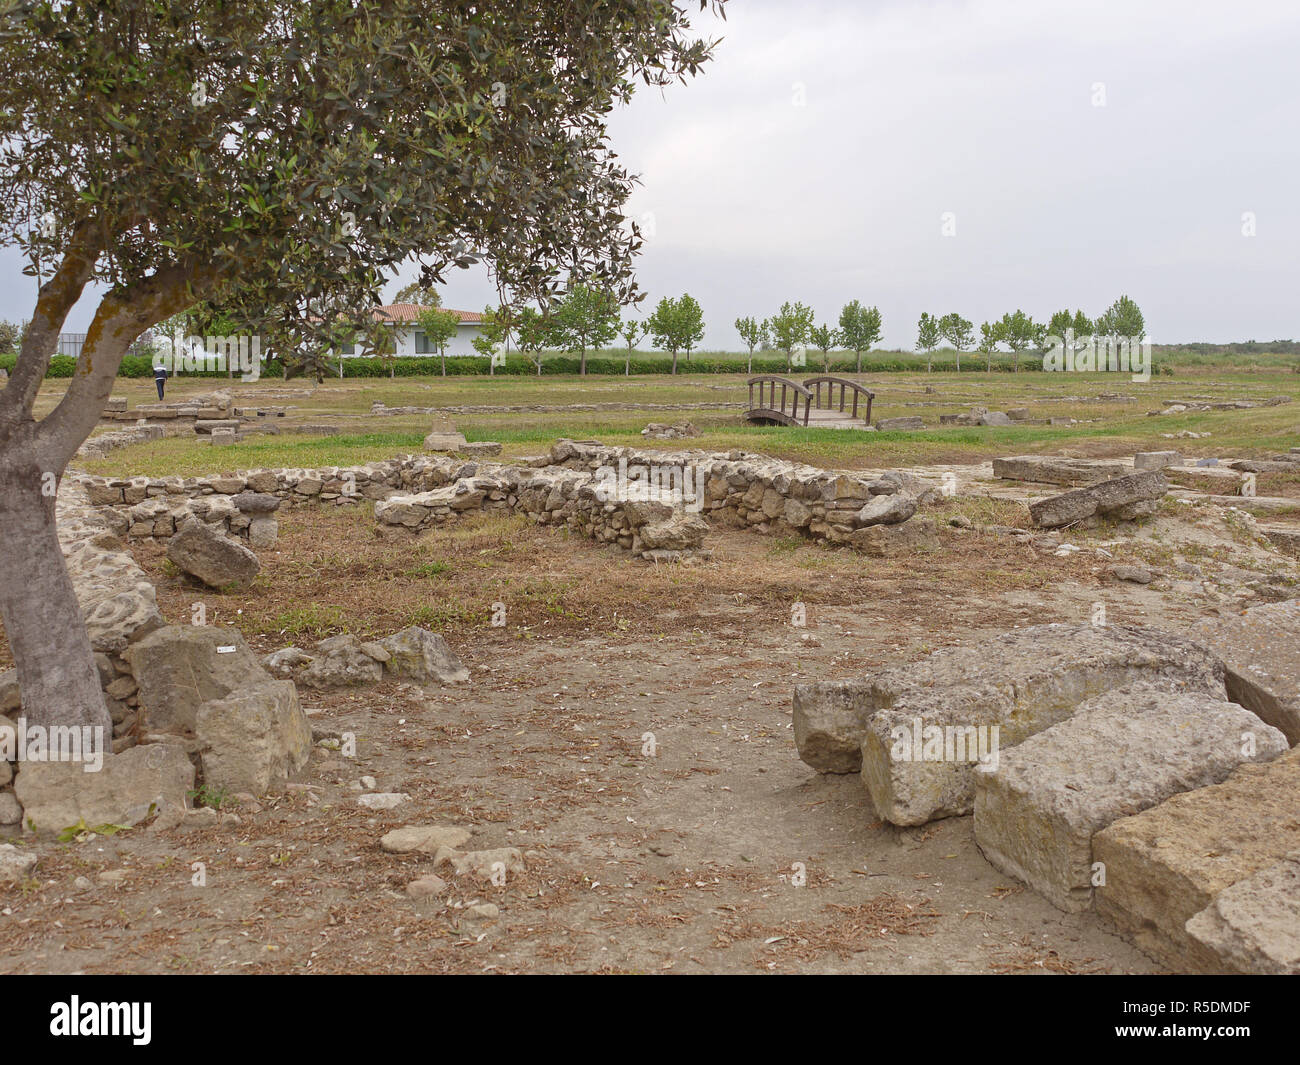 Remains of an ancient Greek town in the Metaponto Archaeological Park, Province of Matera, Italy Stock Photo